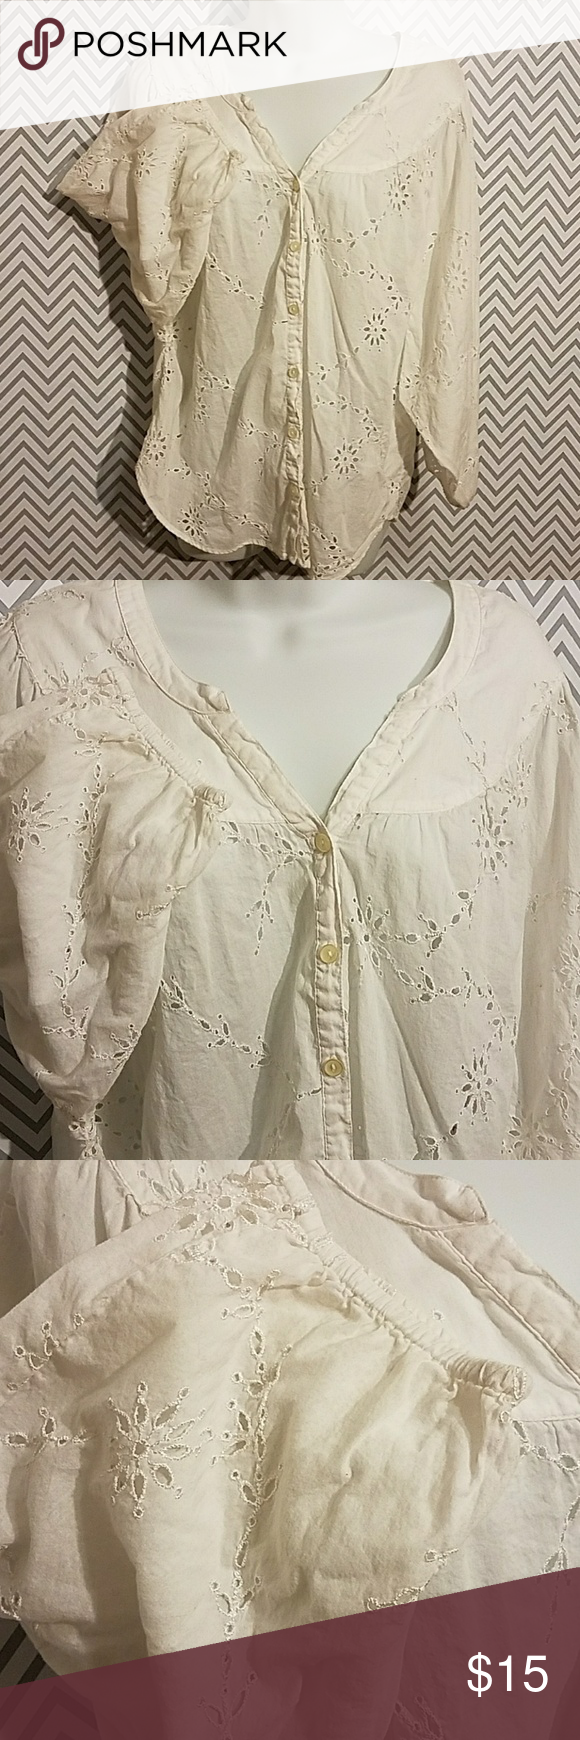 Lucky Brand girly boho white embroidered blouse So romantic and girly. 100% cotton pilot button down blouse with six buttons. V-neck. Elastic at the sleeves. Hi low hem. In perfect condition. Lucky Brand Tops Blouses